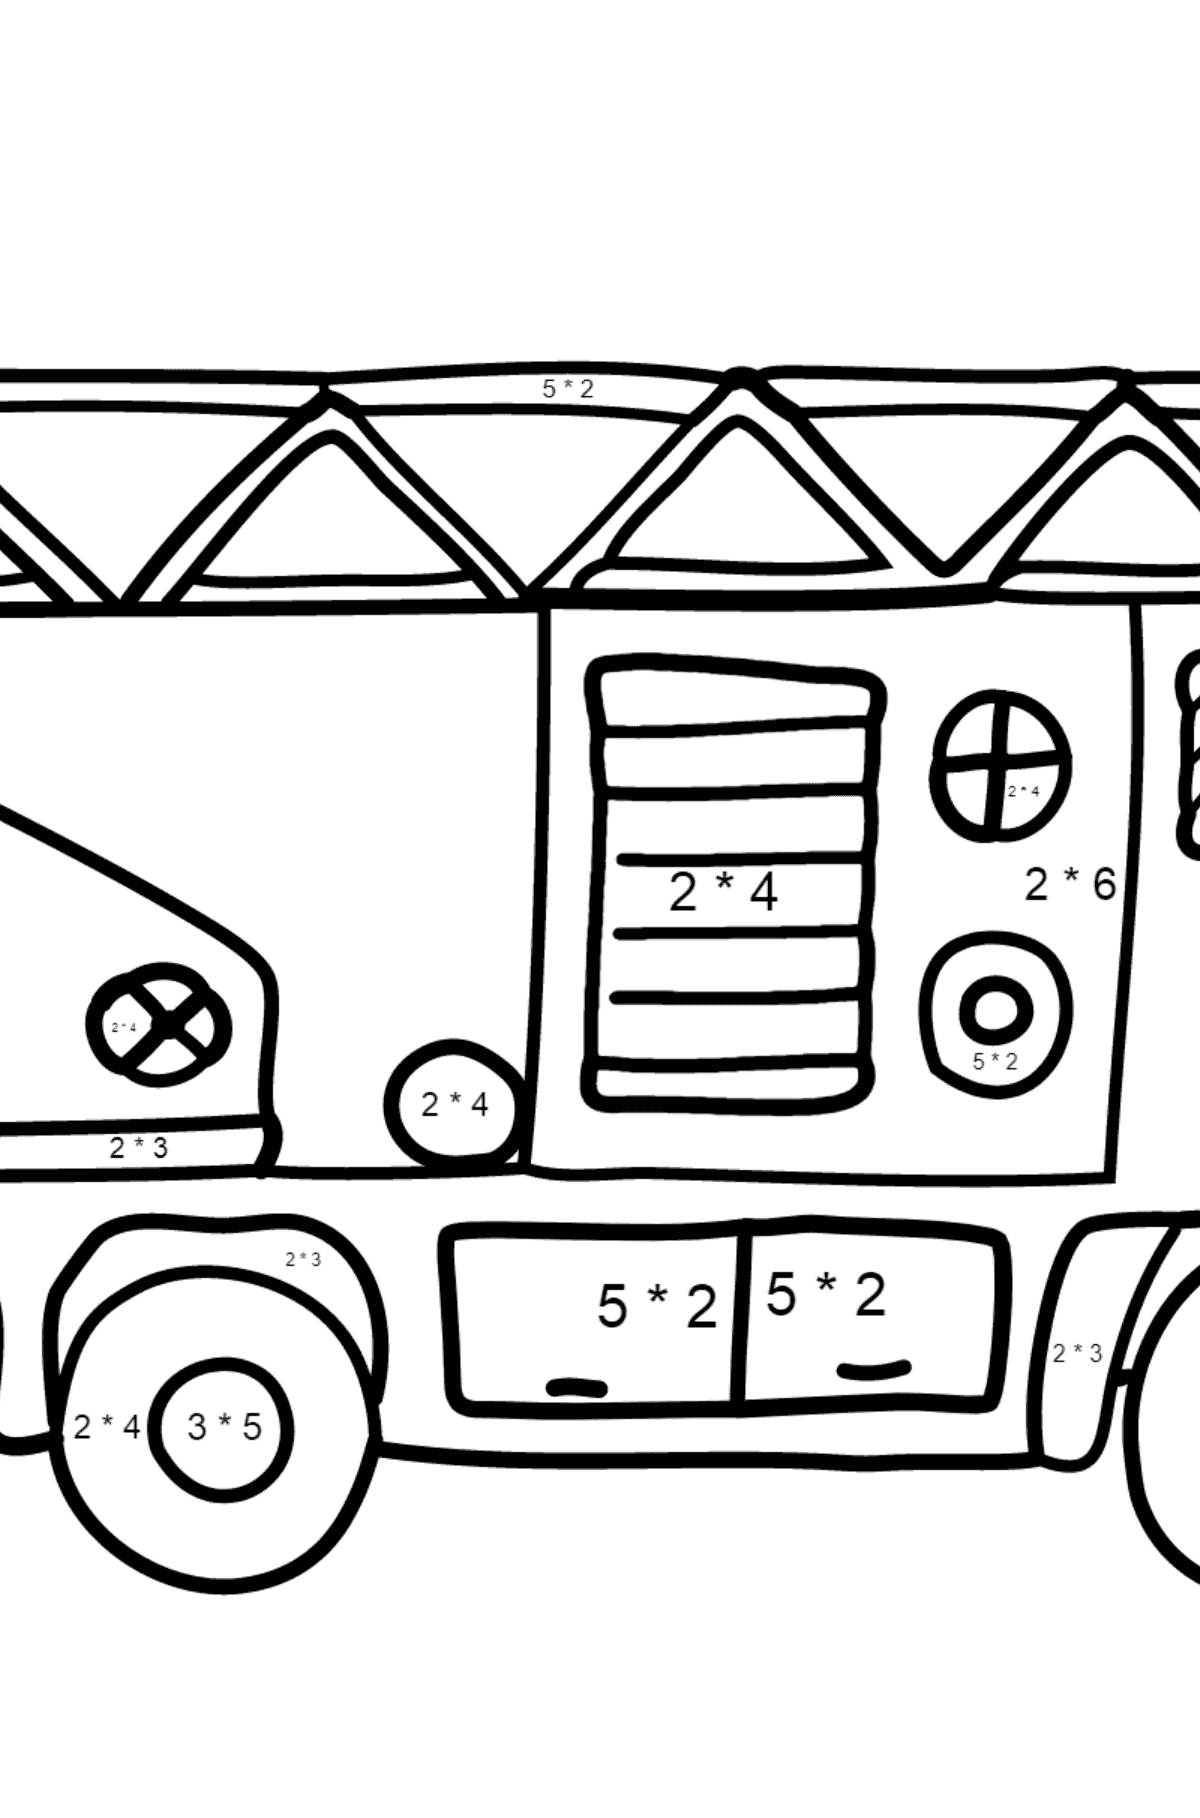 Coloring Page - A Fire Truck for Children  - Color by Number Multiplication